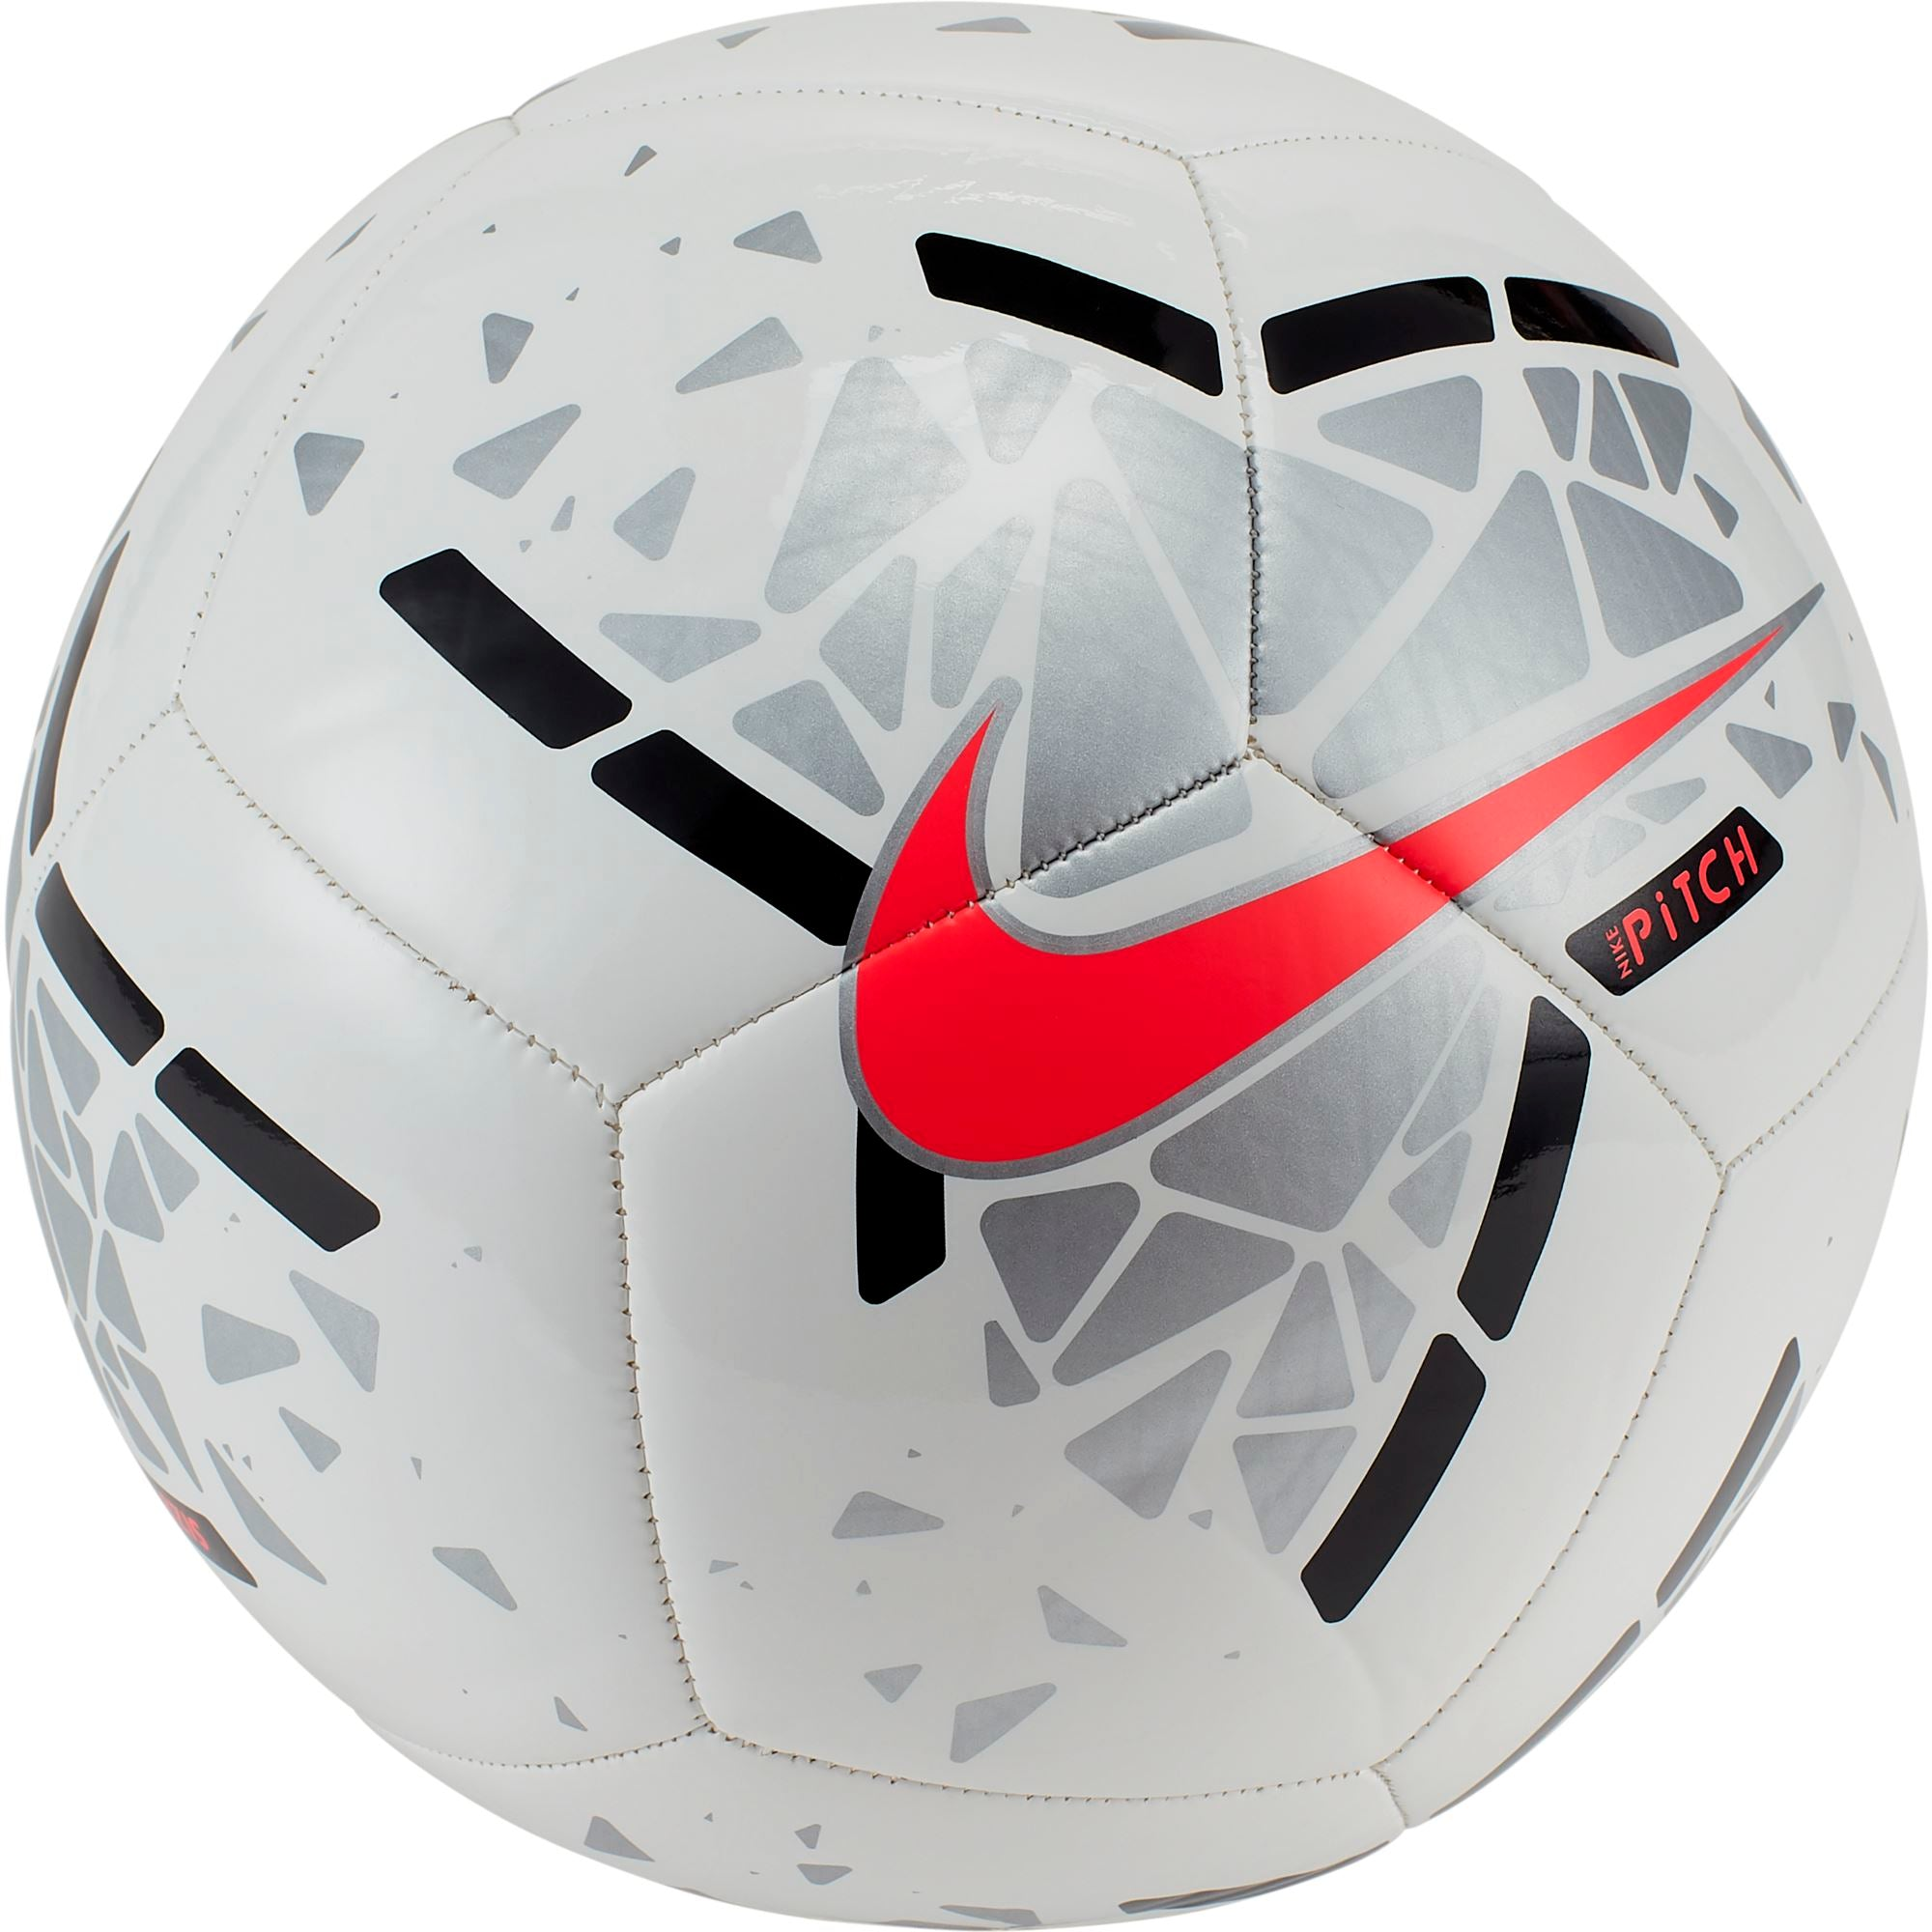 Nike Pitch Soccer Ball - White/Metallic Silver/Laser Crimson SP-Balls-Soccer Nike